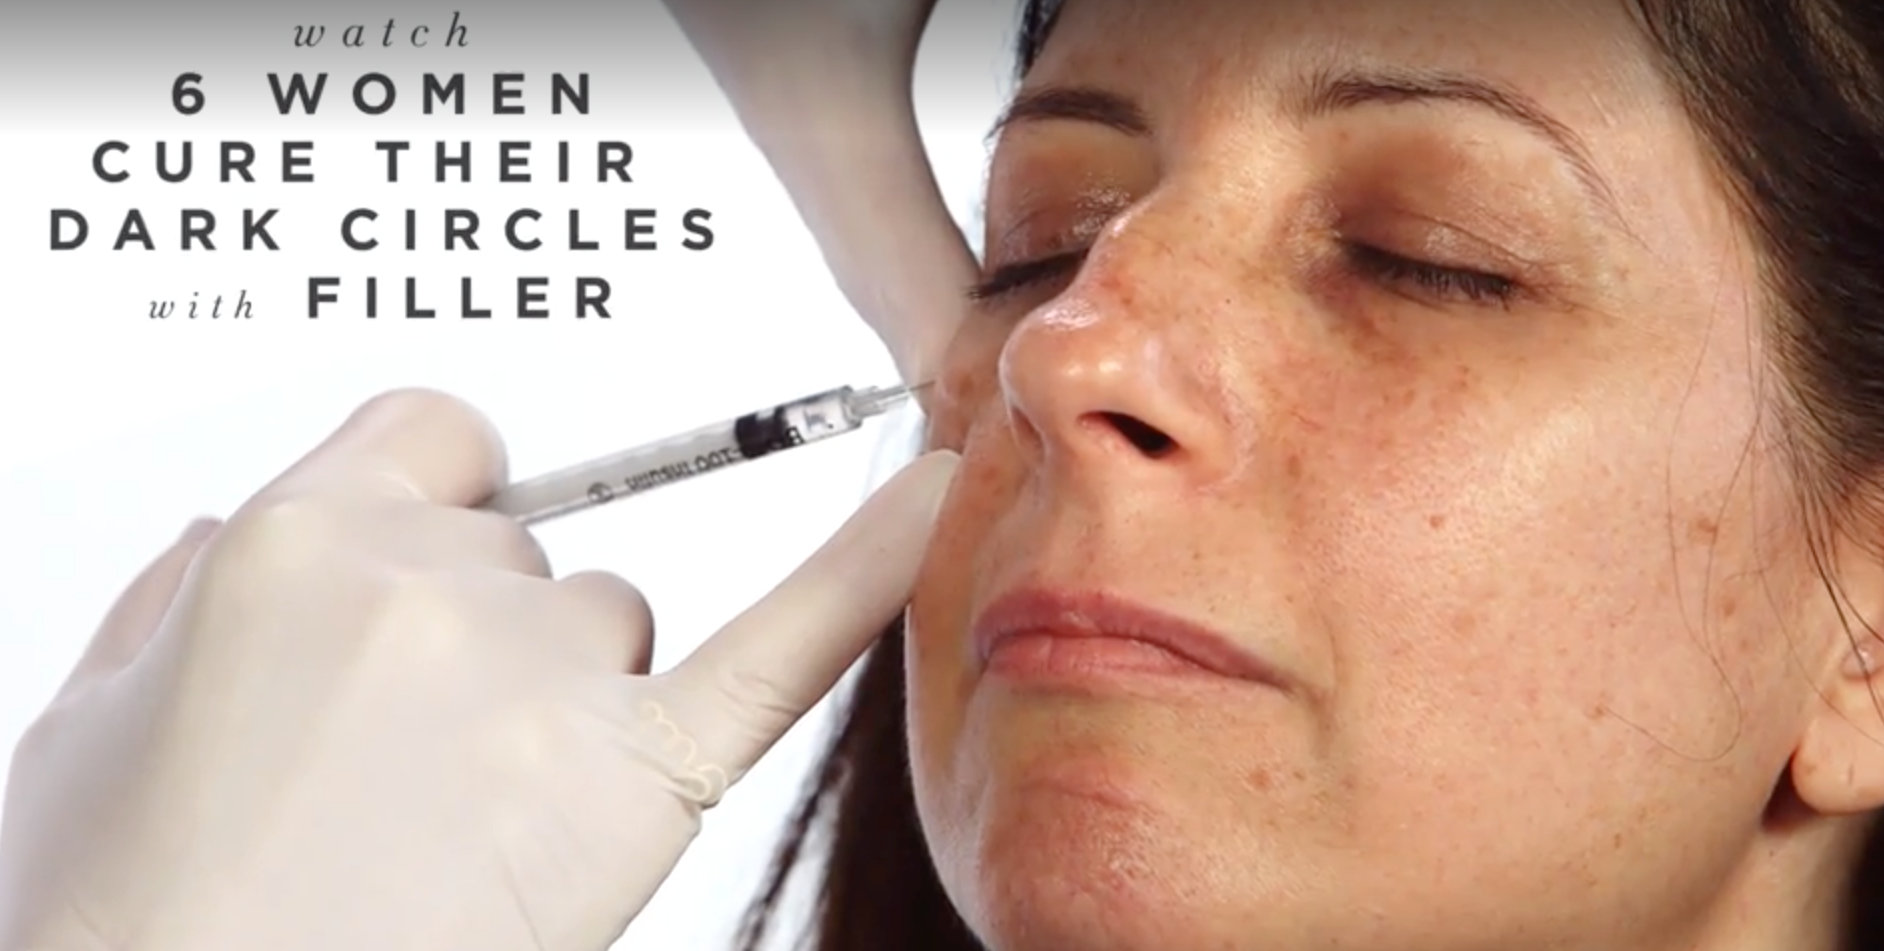 Everything You Need To Know About Undereye Filler For Dark Circles